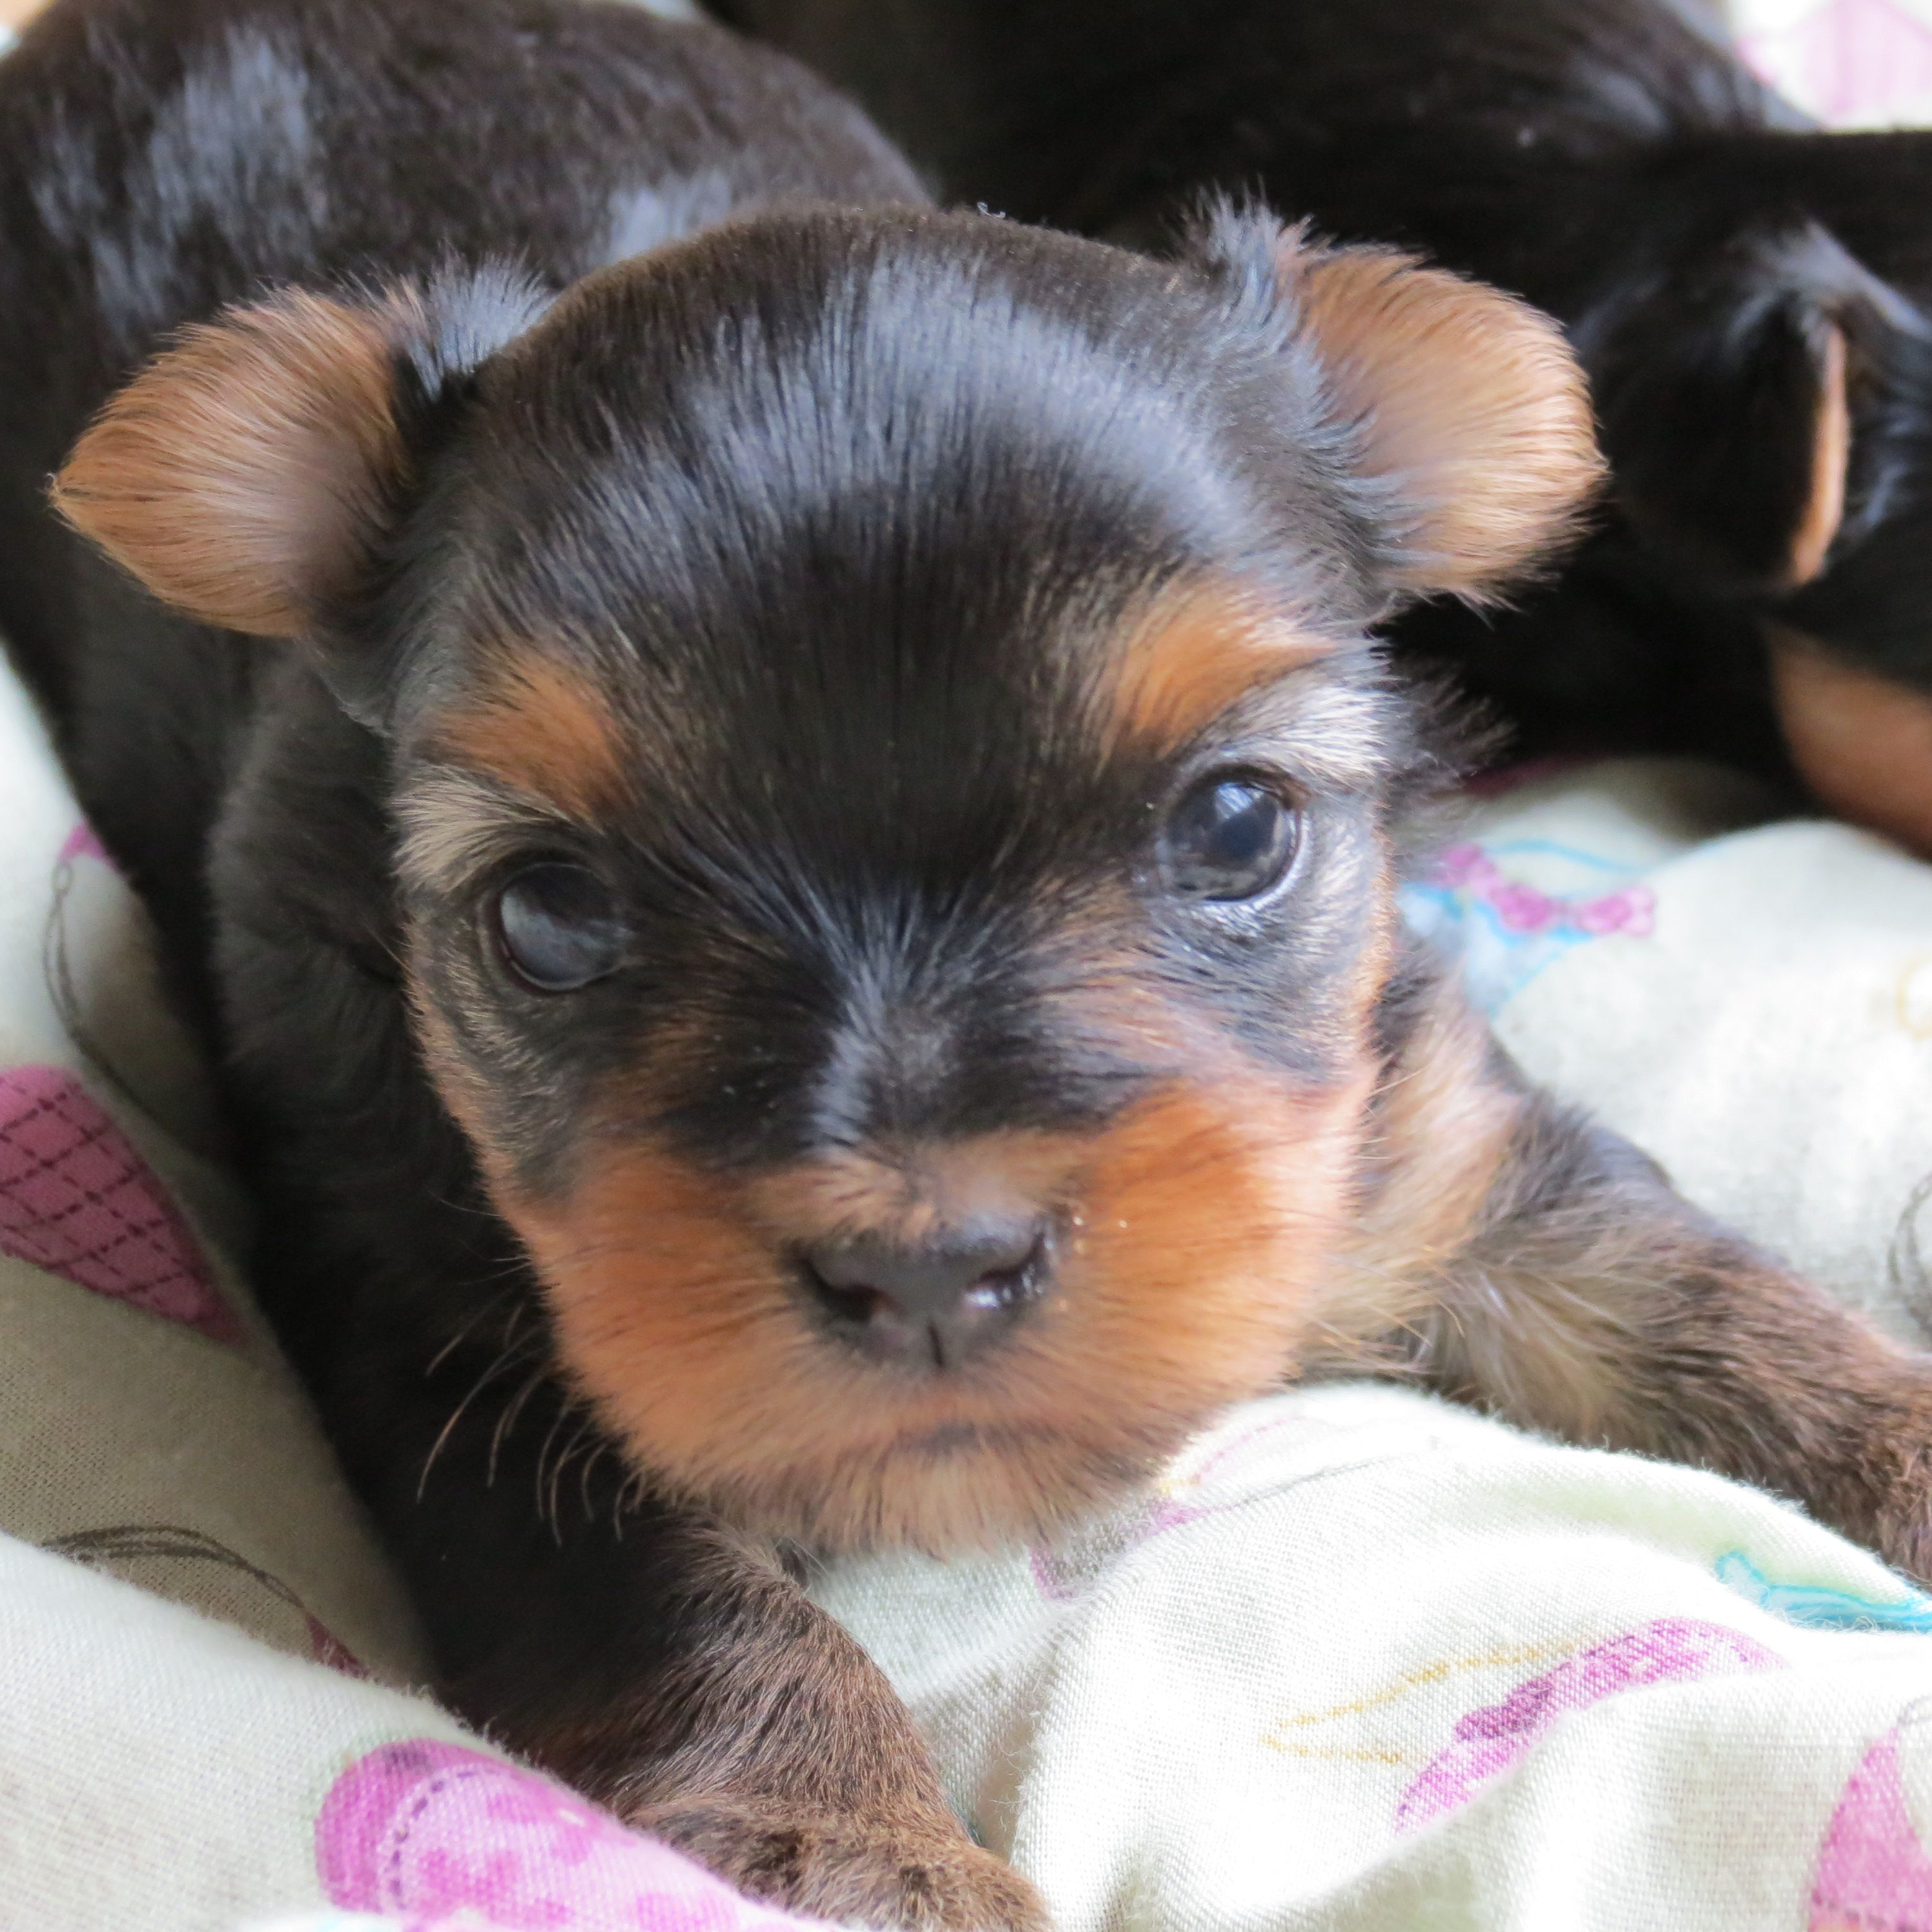 Teacup Puppies For Sale - Teacup Puppies, Tiny